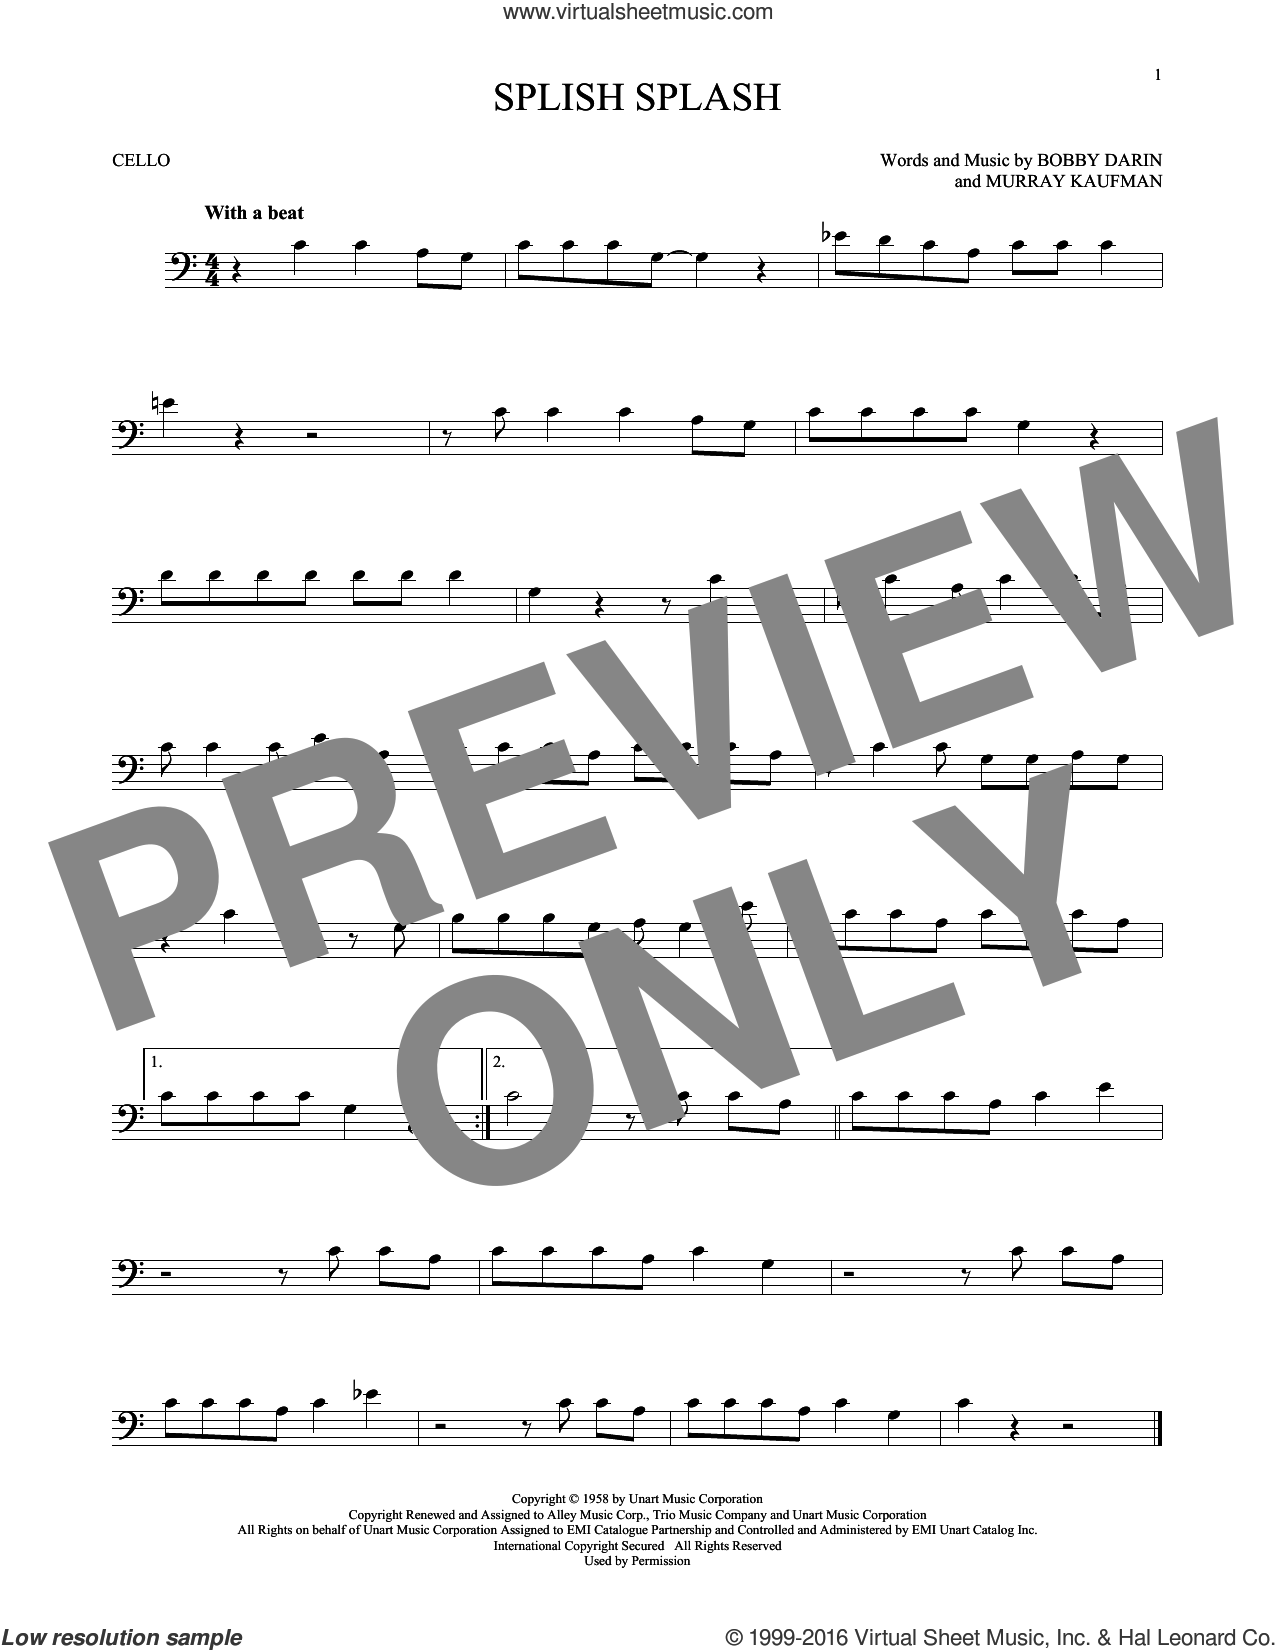 Splish Splash sheet music for cello solo by Bobby Darin and Murray Kaufman, intermediate skill level